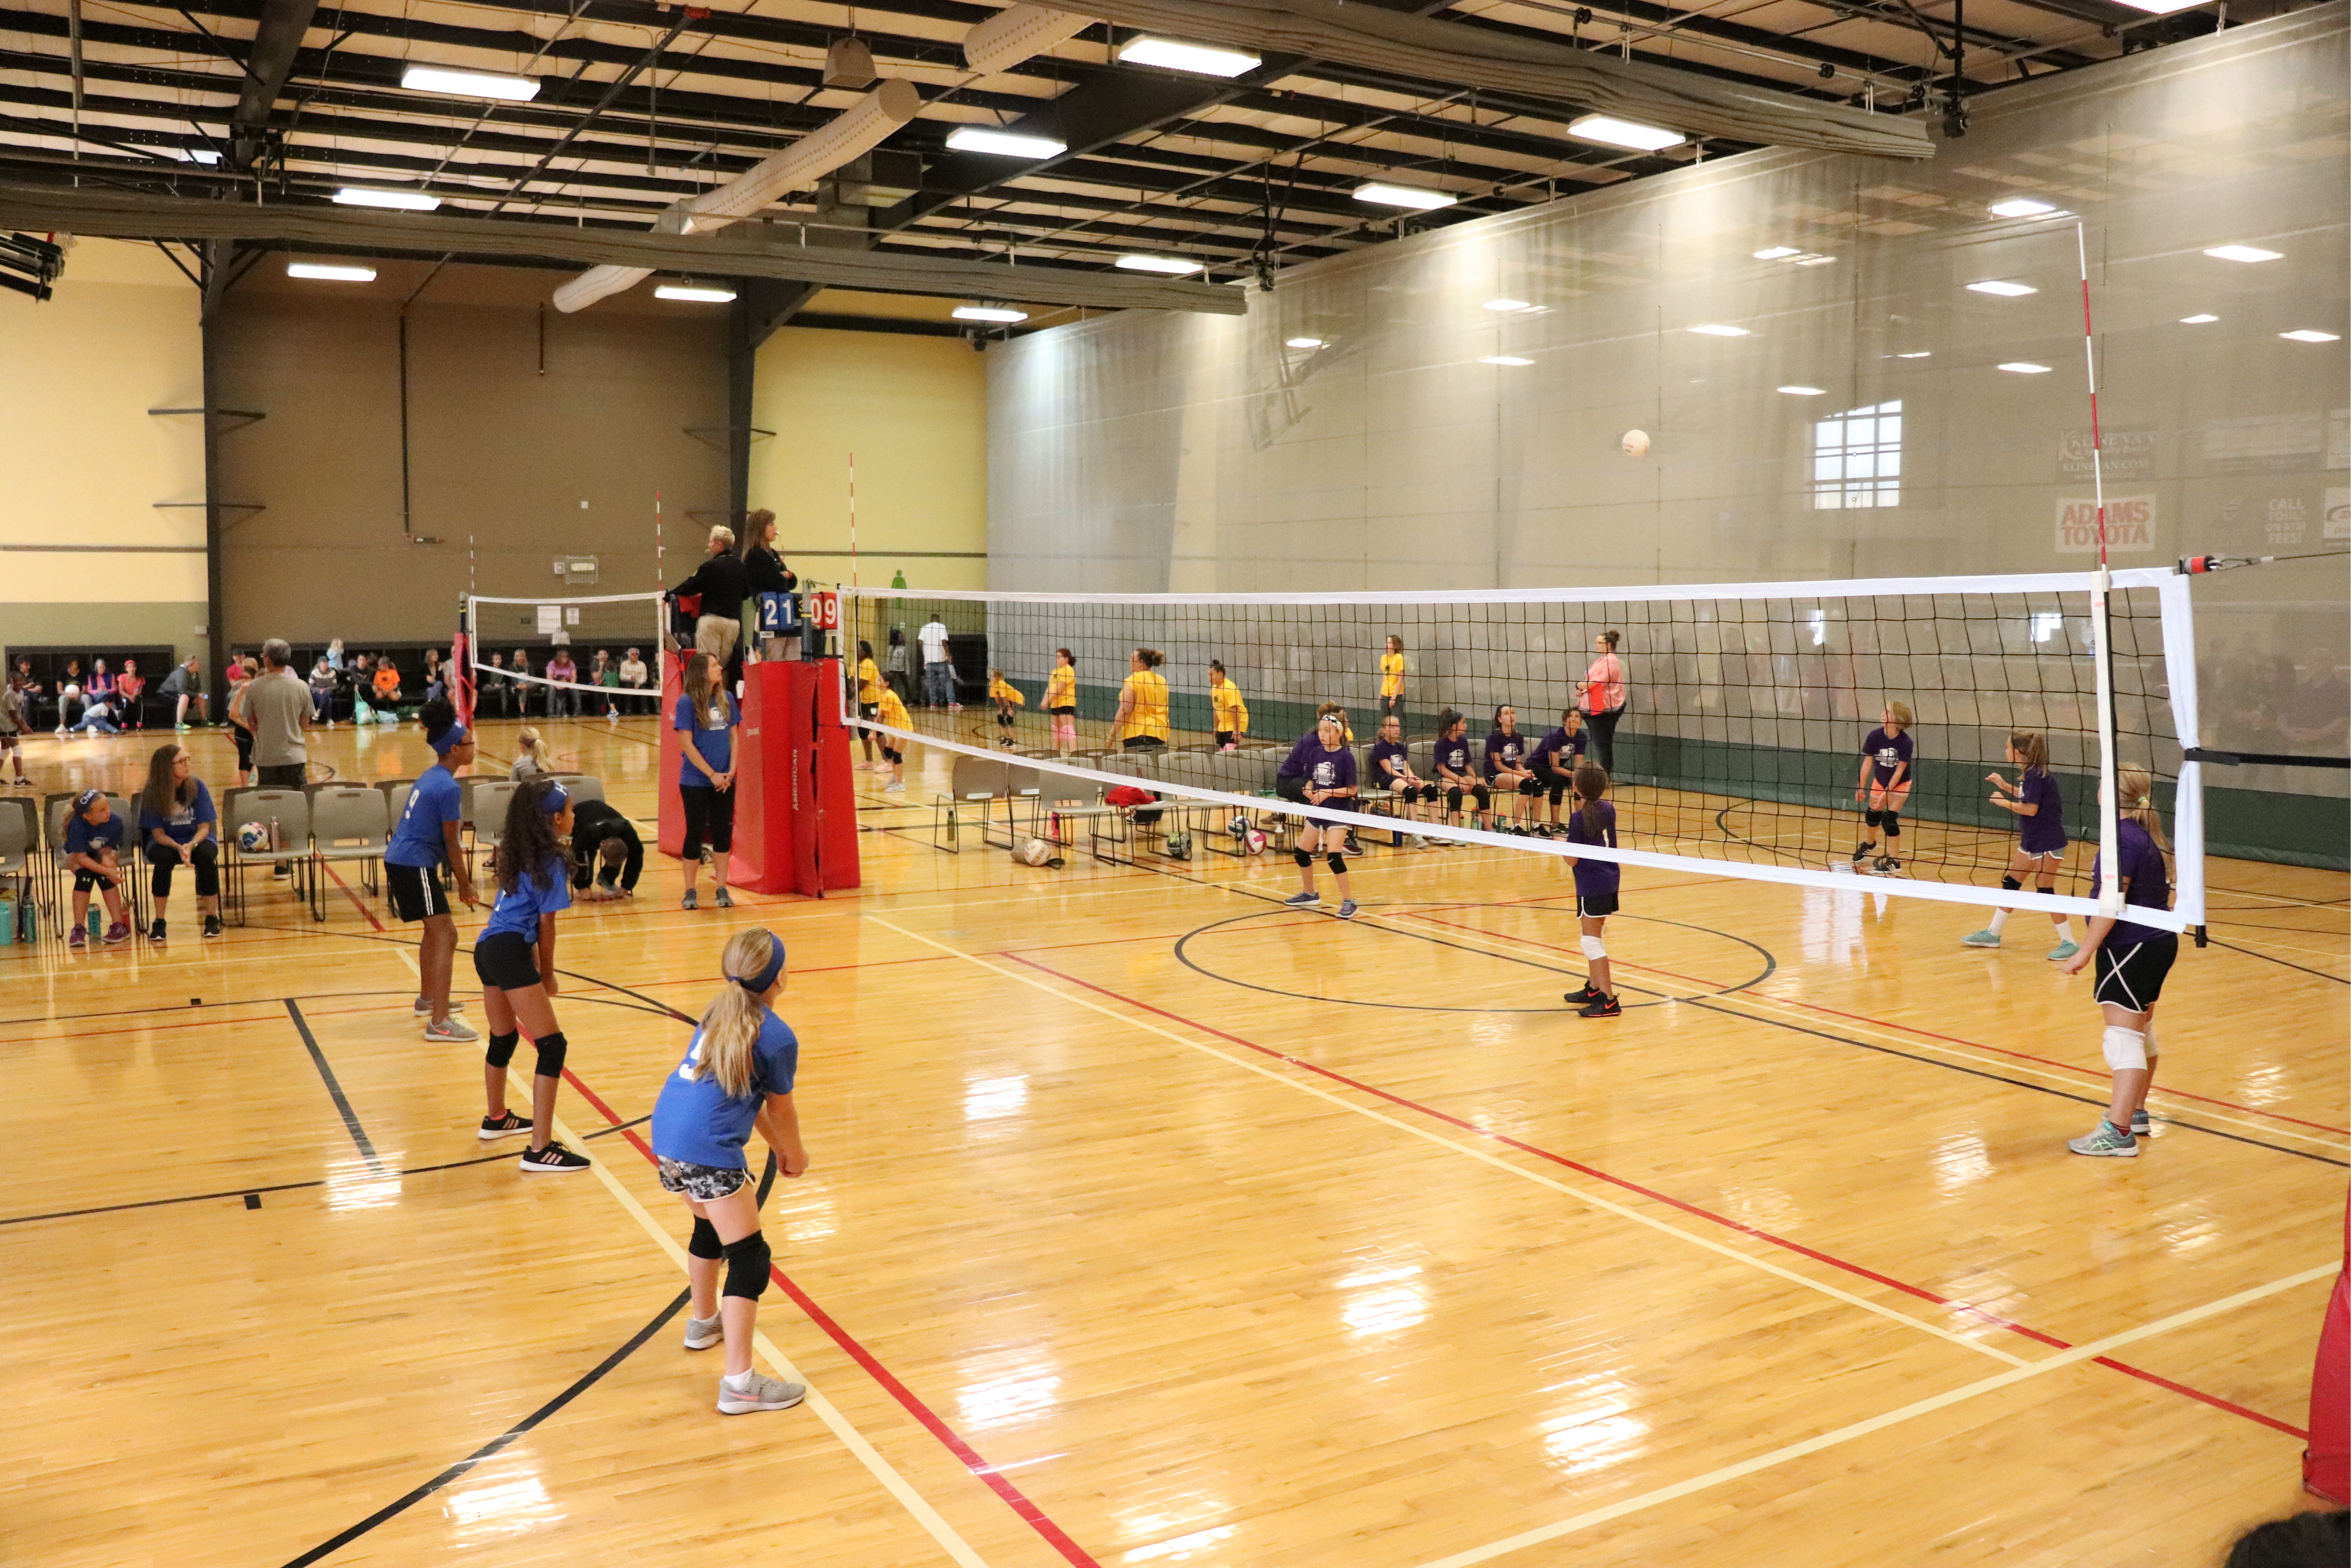 Image of volleyball game or practice.